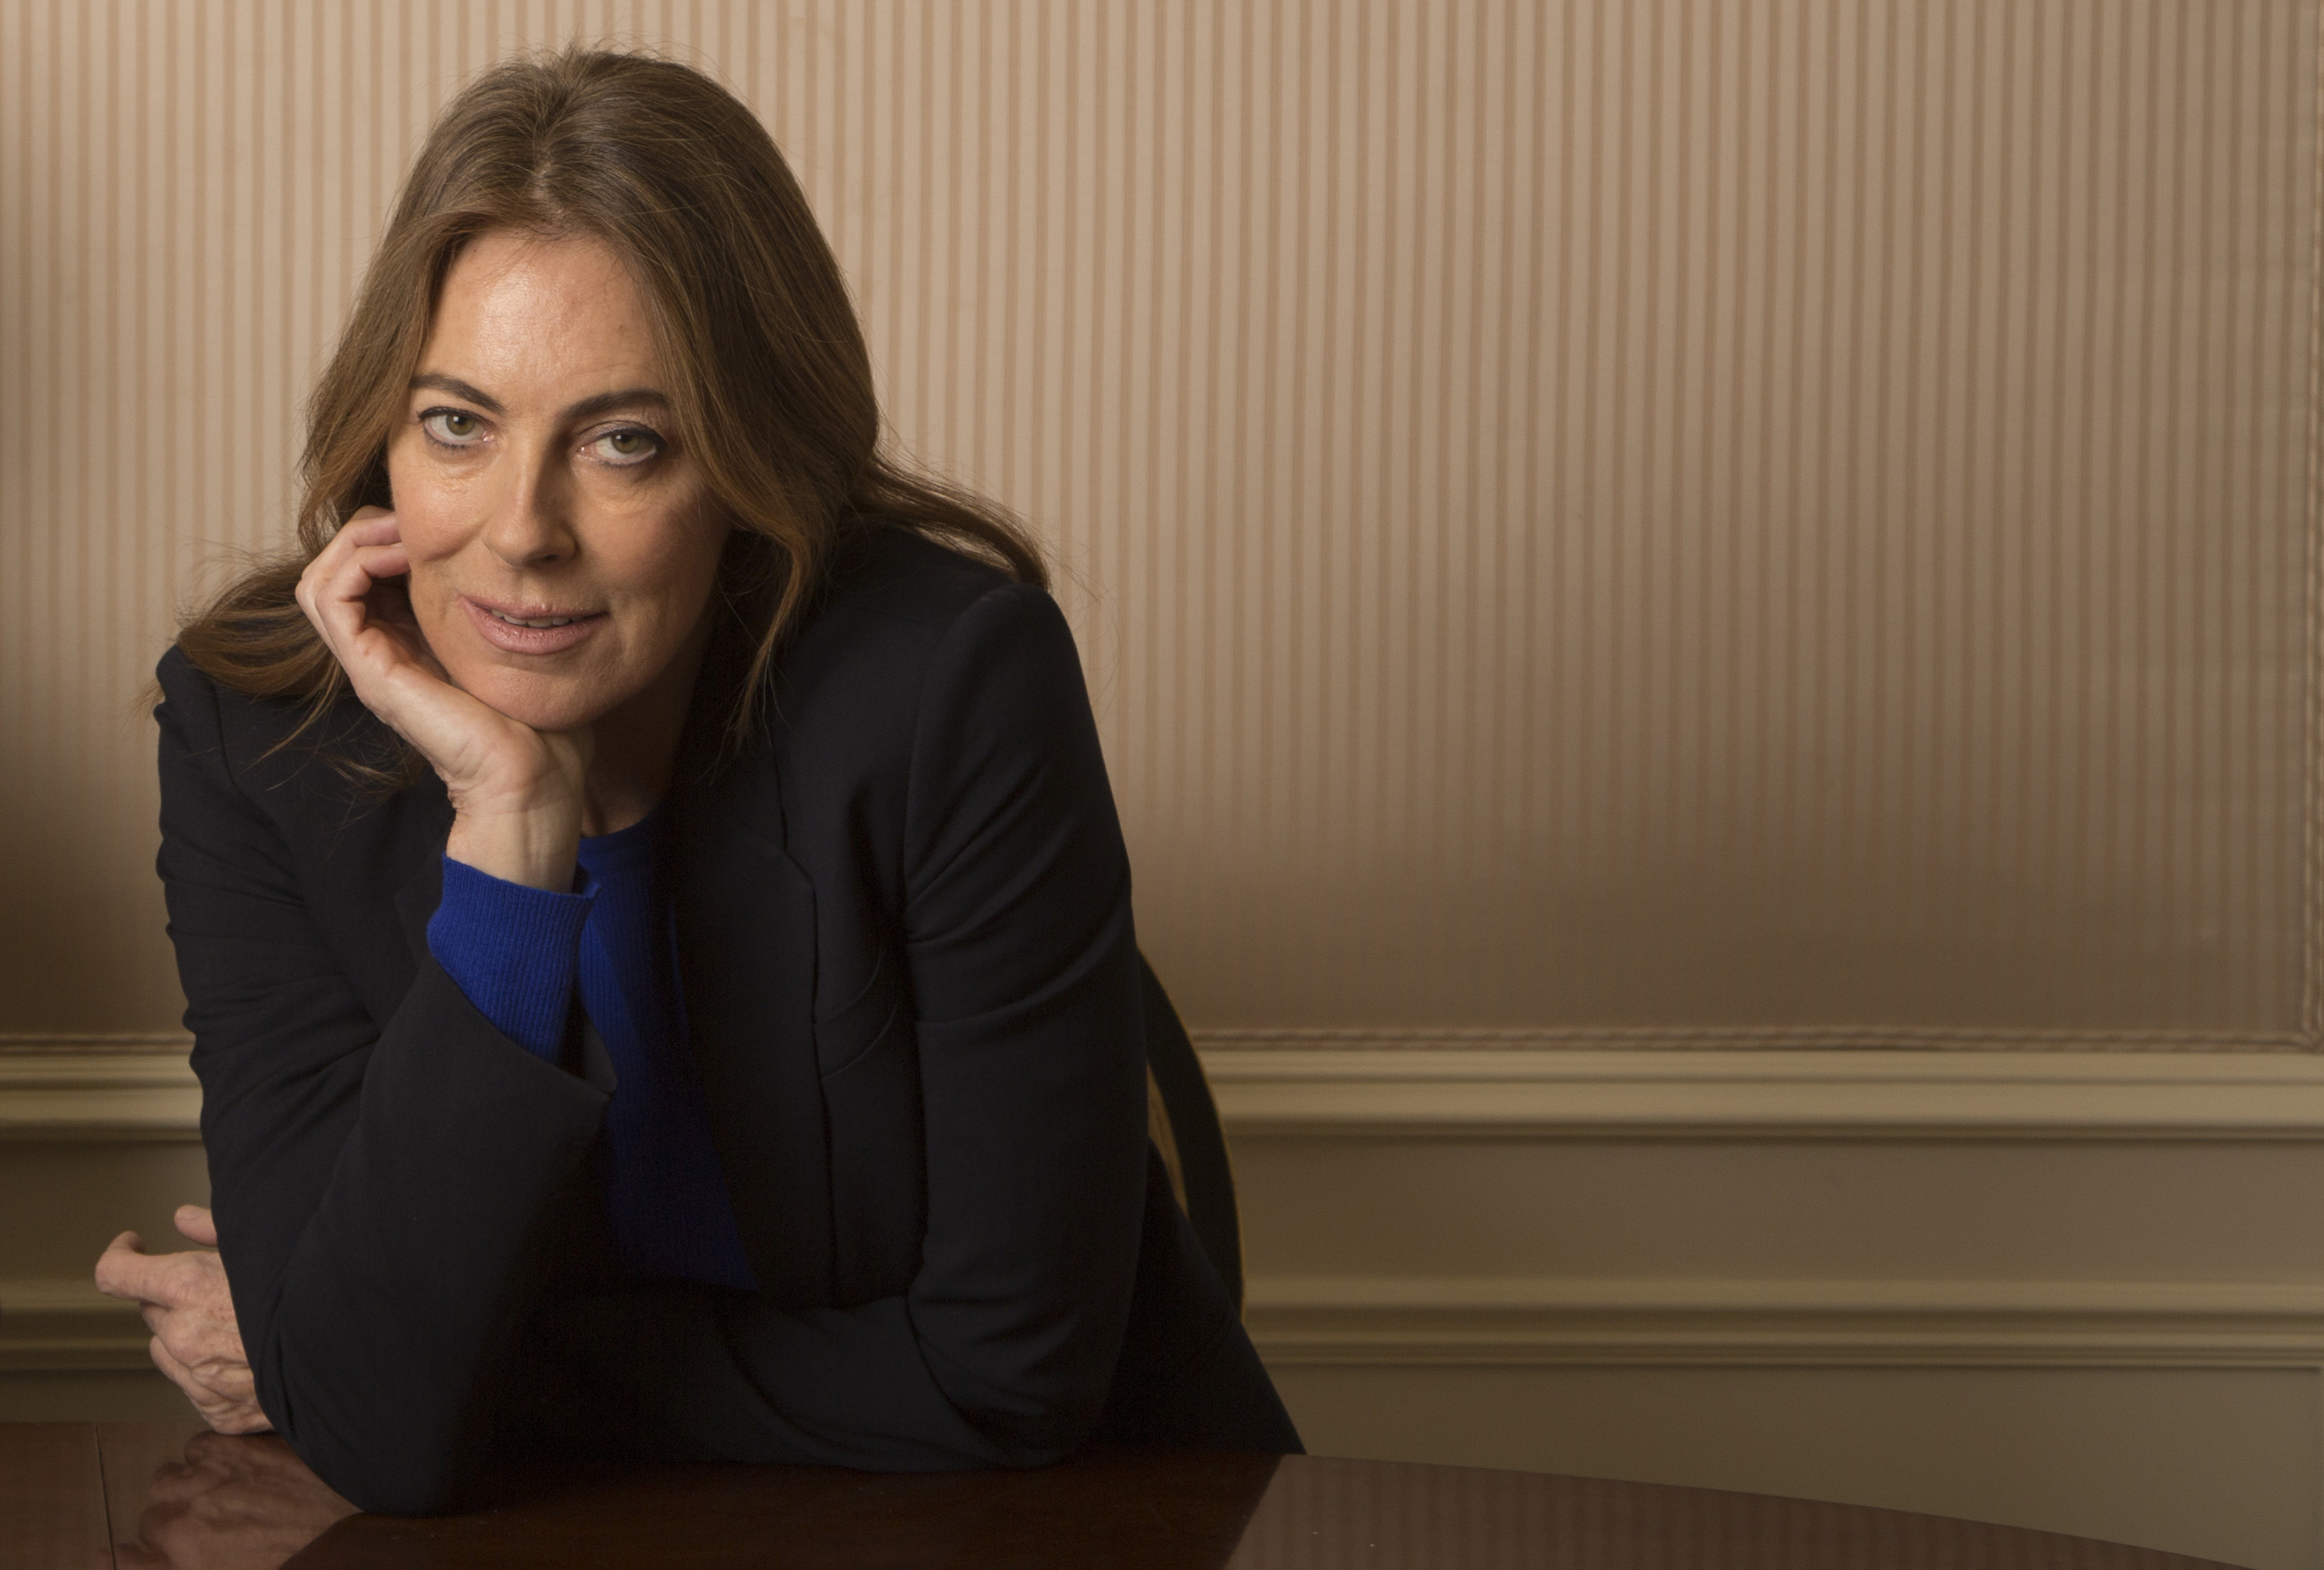 Director Kathryn Bigelow poses for her new film 'Zero Dark Thirty' in New York